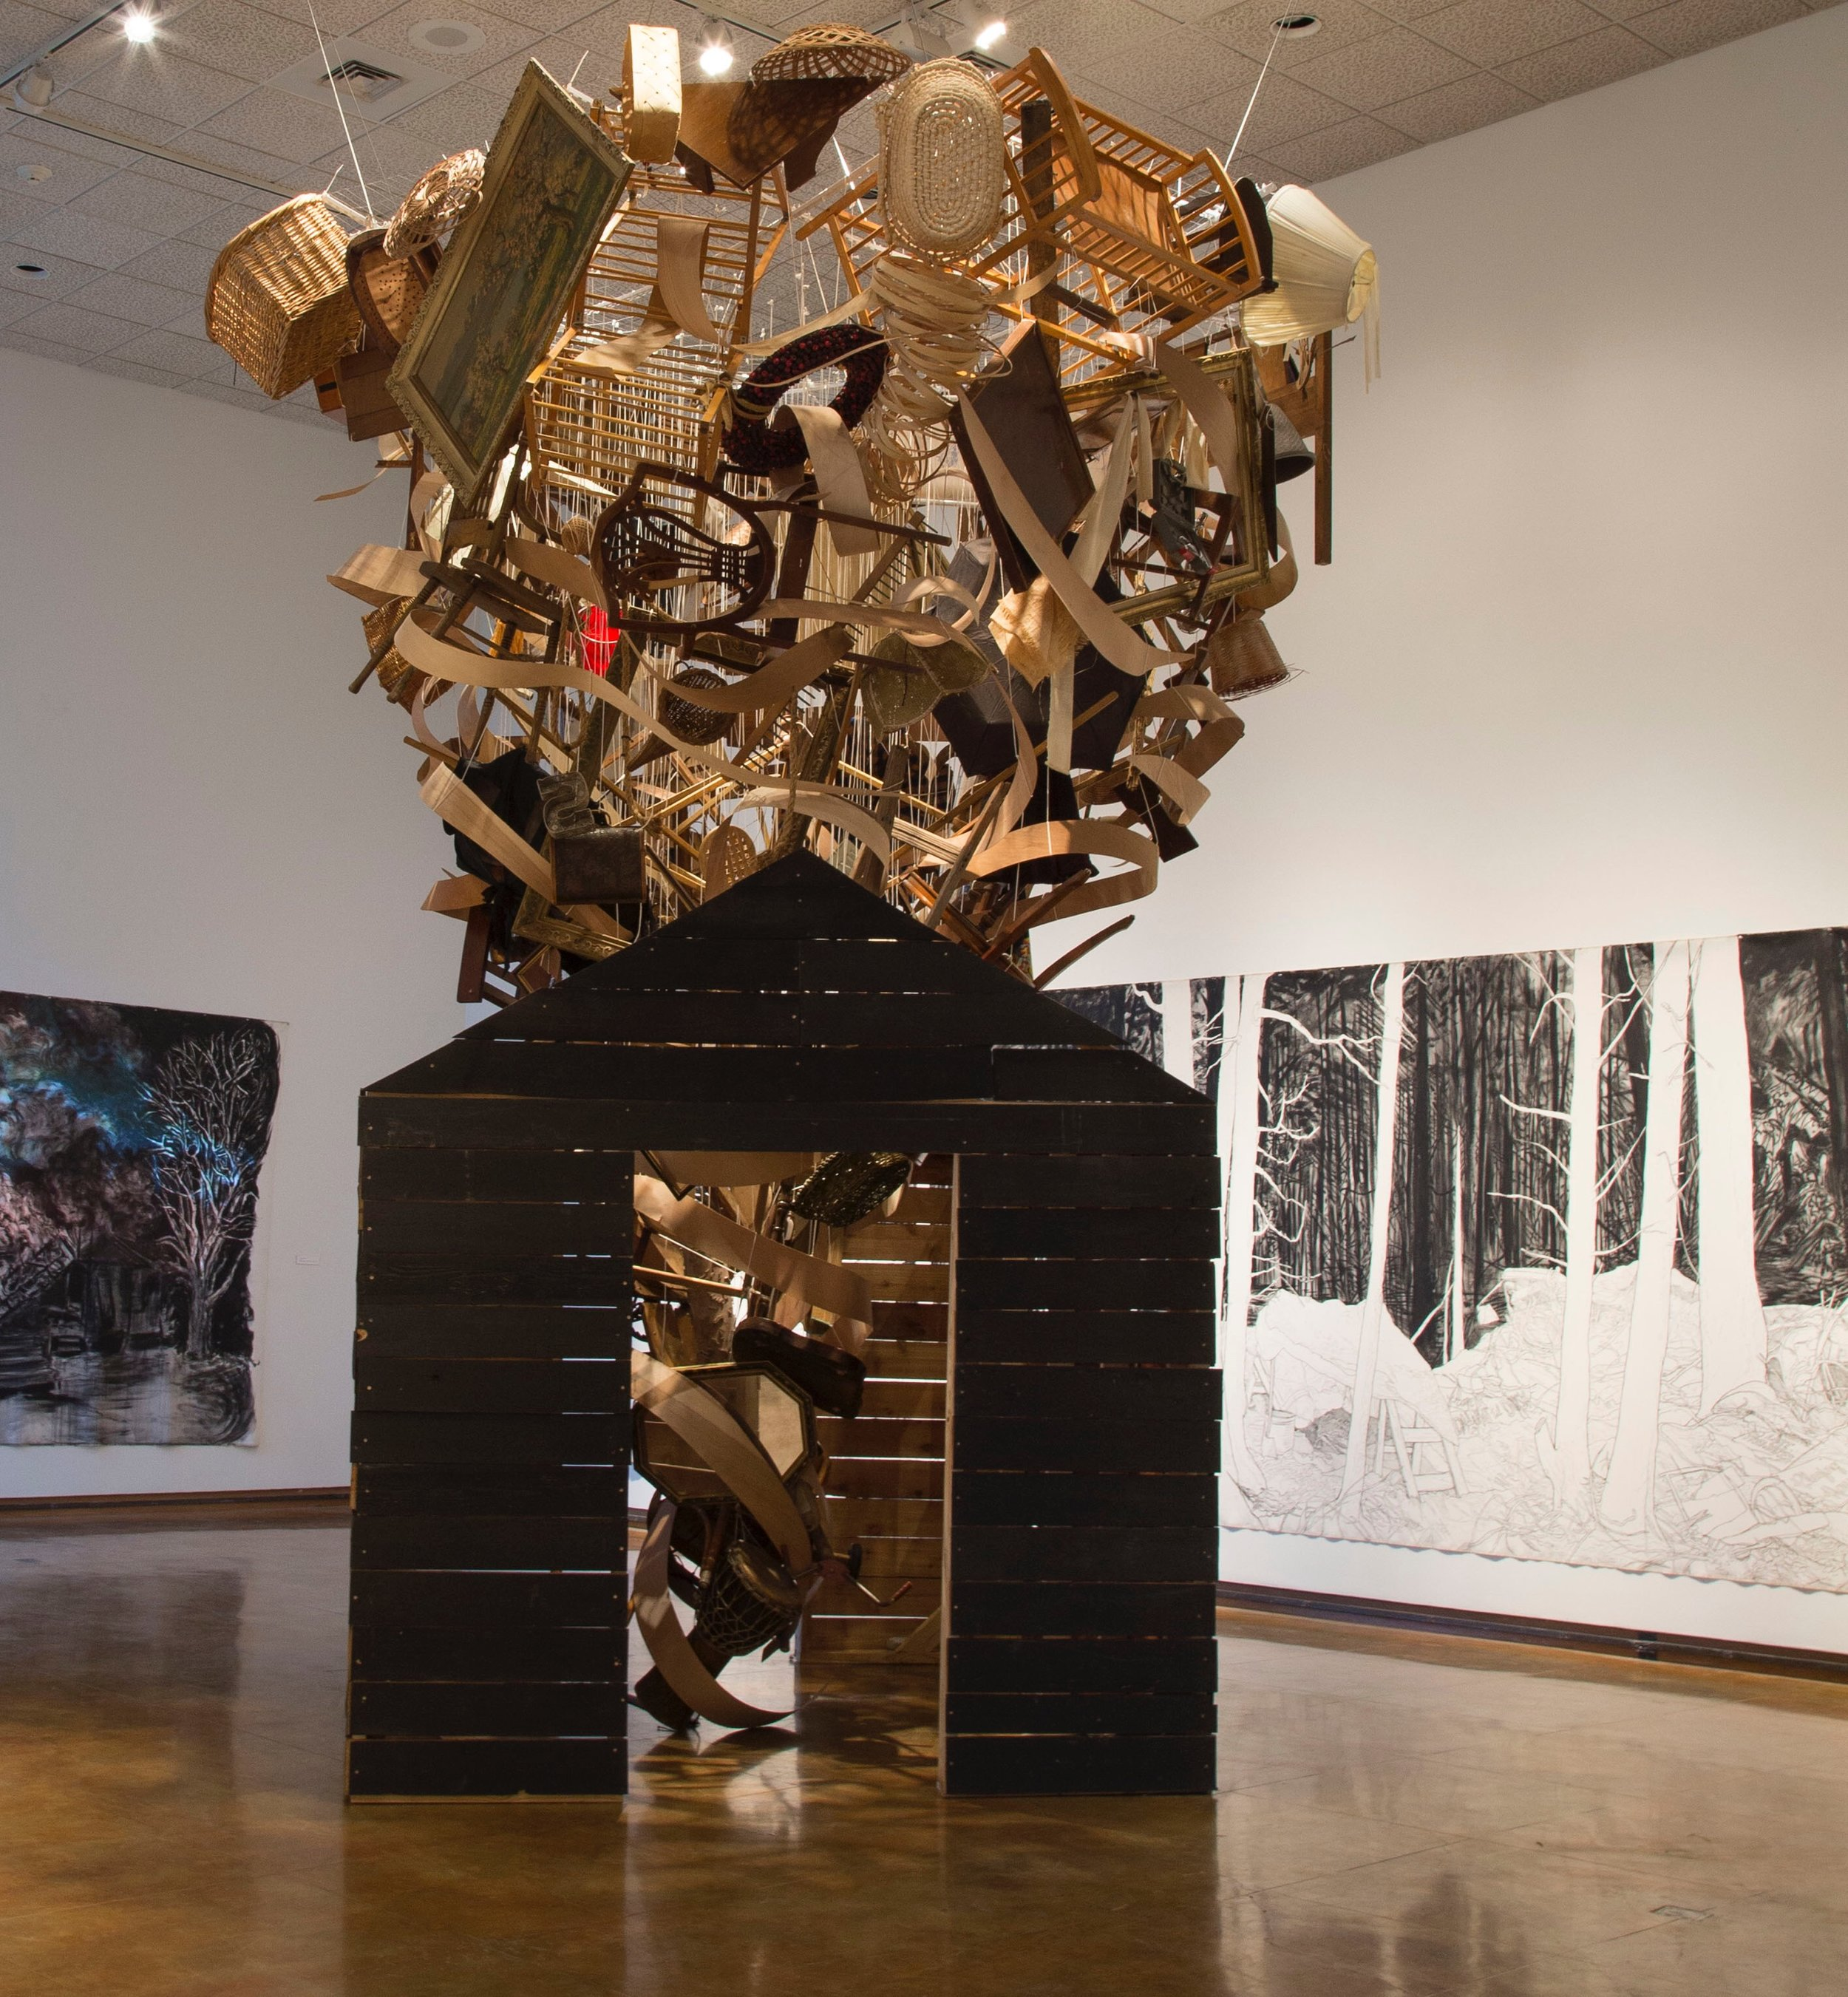 Hollis Hammonds,Up in Smoke (installation at Dishman Art Museum), 2016,Found objects, string, wood & hardware